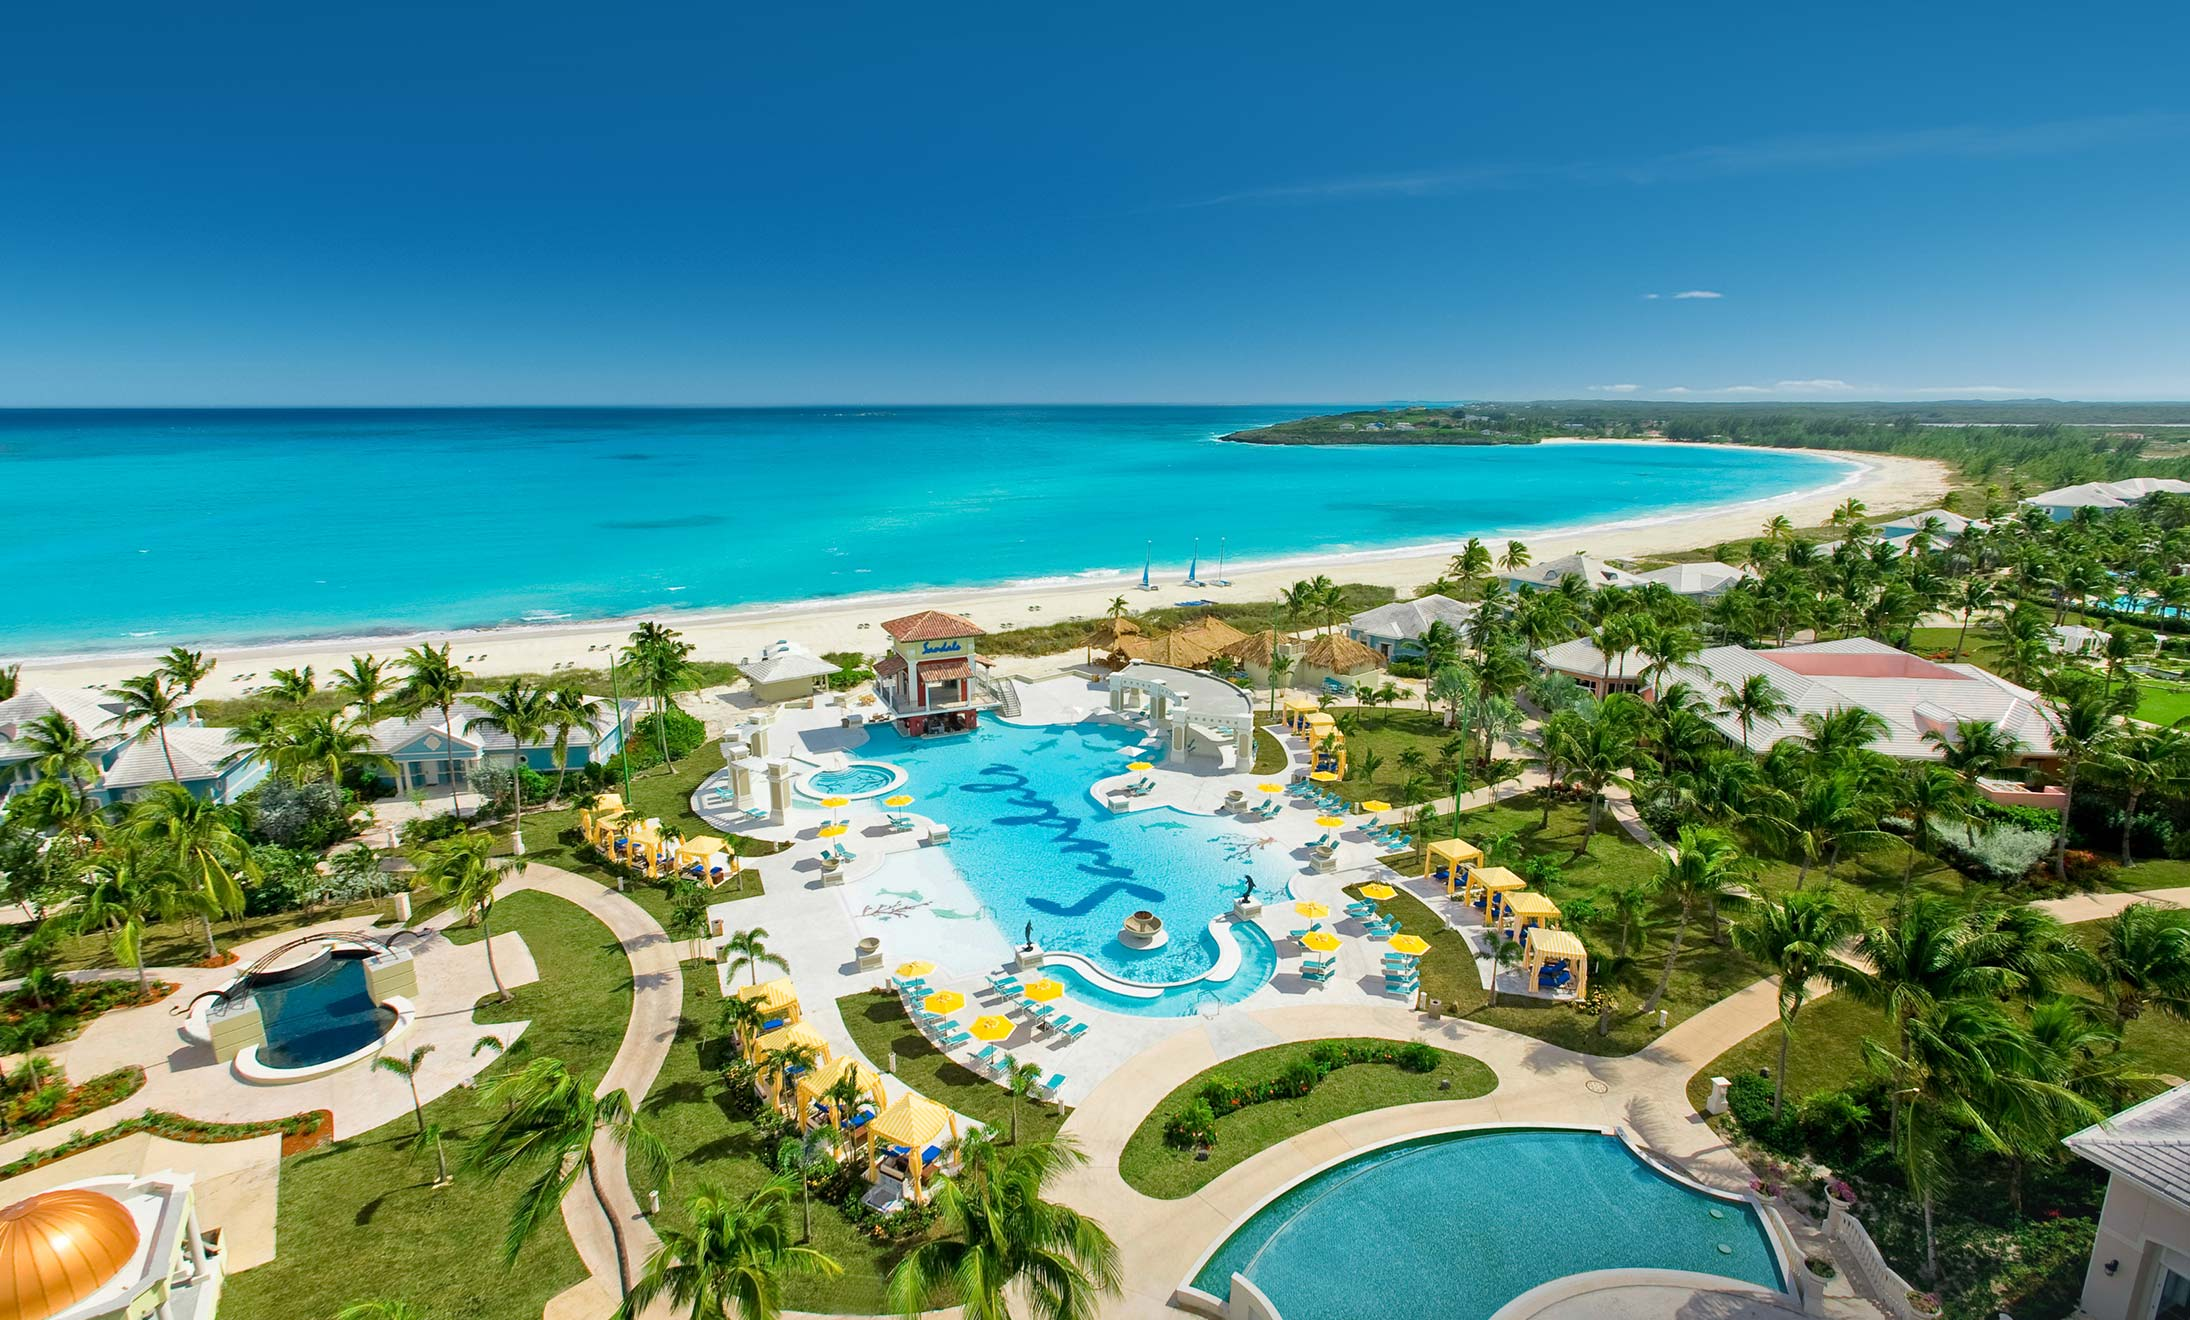 All Inclusive Resort Sandals Resorts Five Star All Inclusive Vacations In The Caribbean